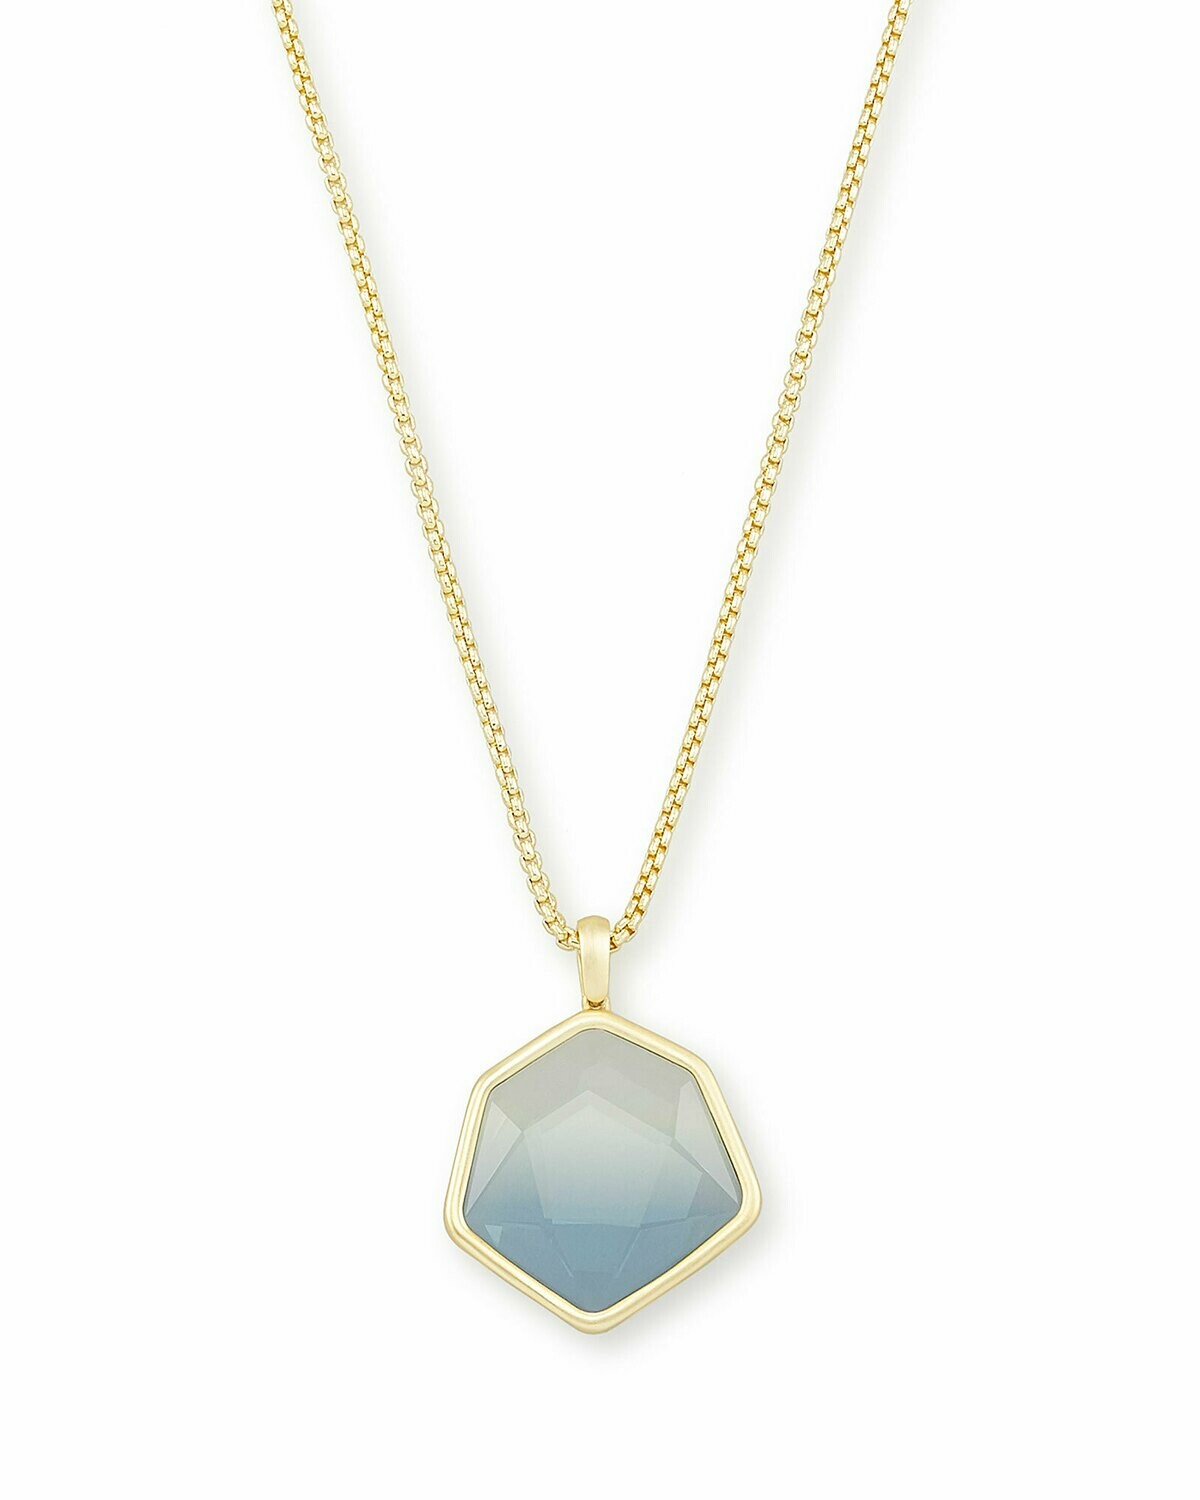 Kendra Scott Vanessa Gold Long Pendant Necklace In Steel Gray Ombre